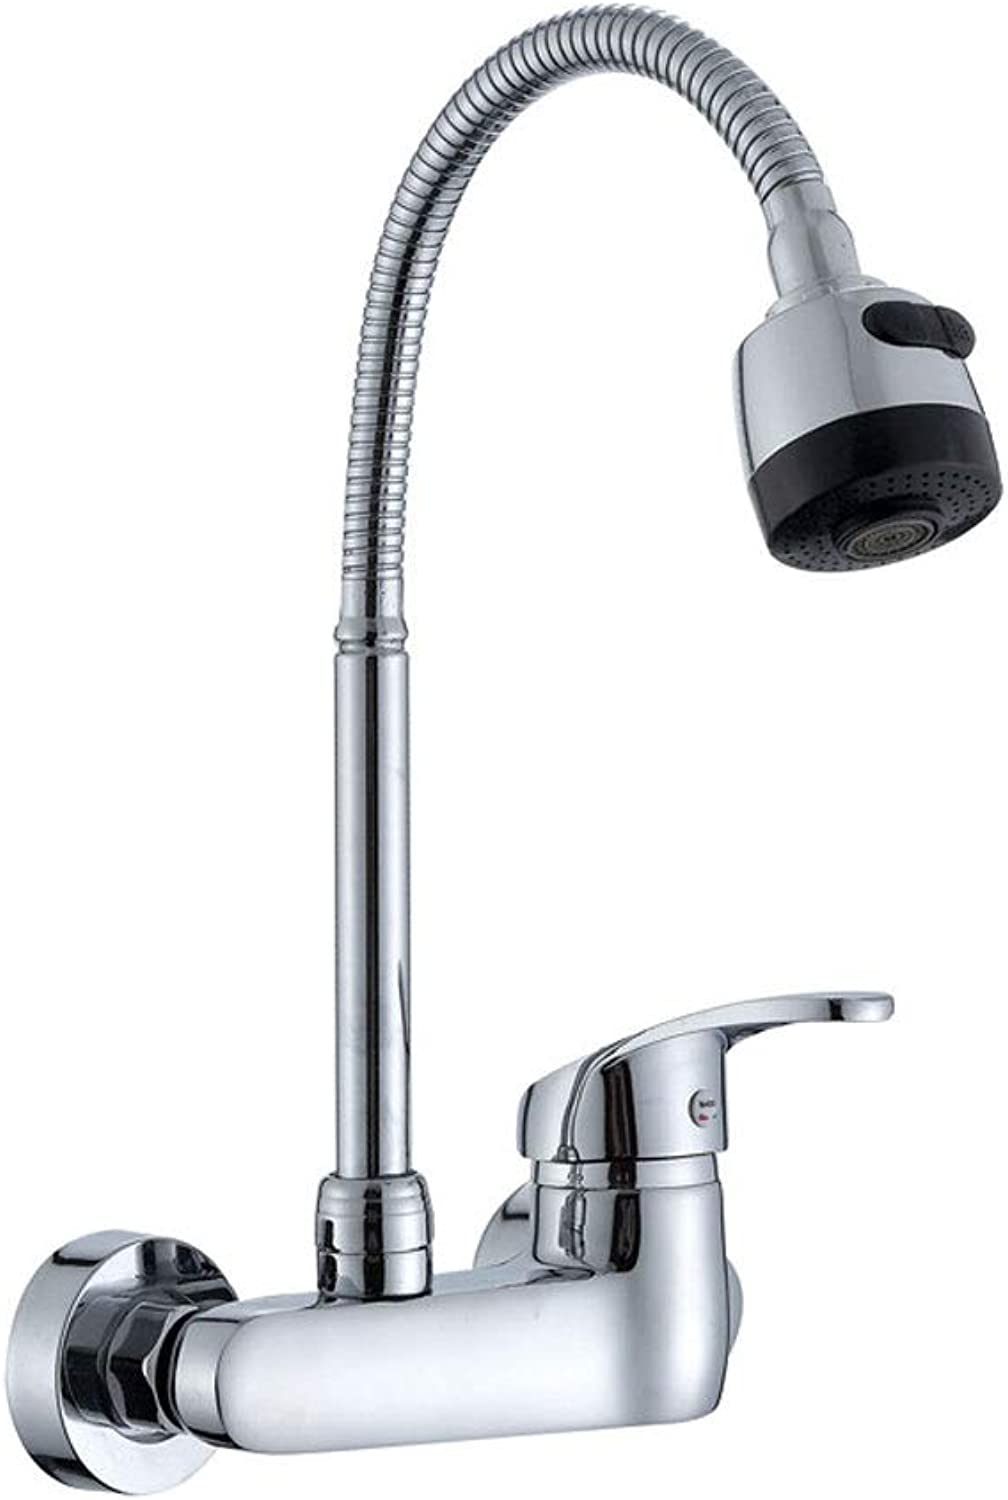 WOOMD WOOMD Single Handle Single Sole Tap Home Modern 360 Degree Swivel Single Lever Brushed Nickel Kitchen Sink Tap, Hot&Cold Water Mixer Kitchen Taps( Stove, Sink, Tableware and Other Kitchen Equipm